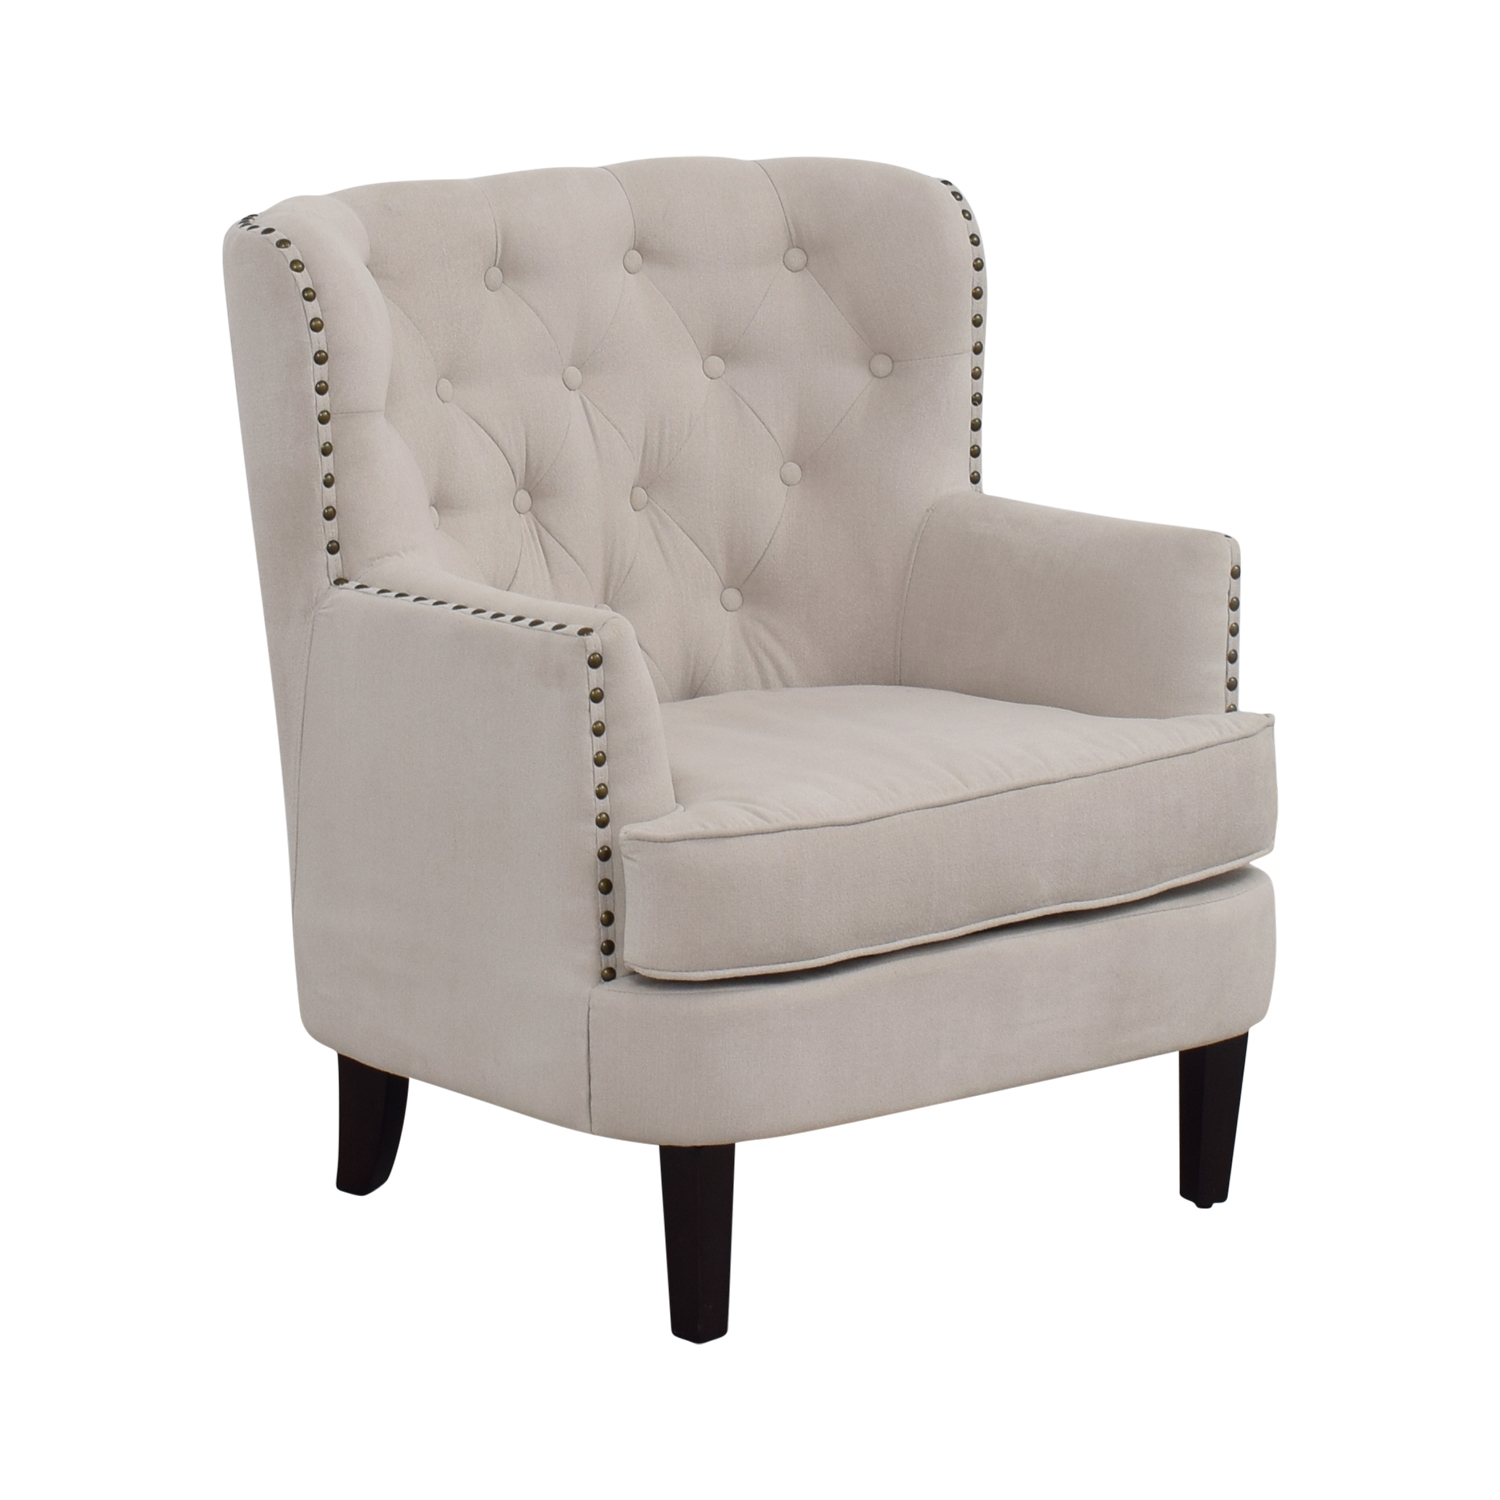 West Elm Chairs: West Elm West Elm Chrisanna Beige Tufted